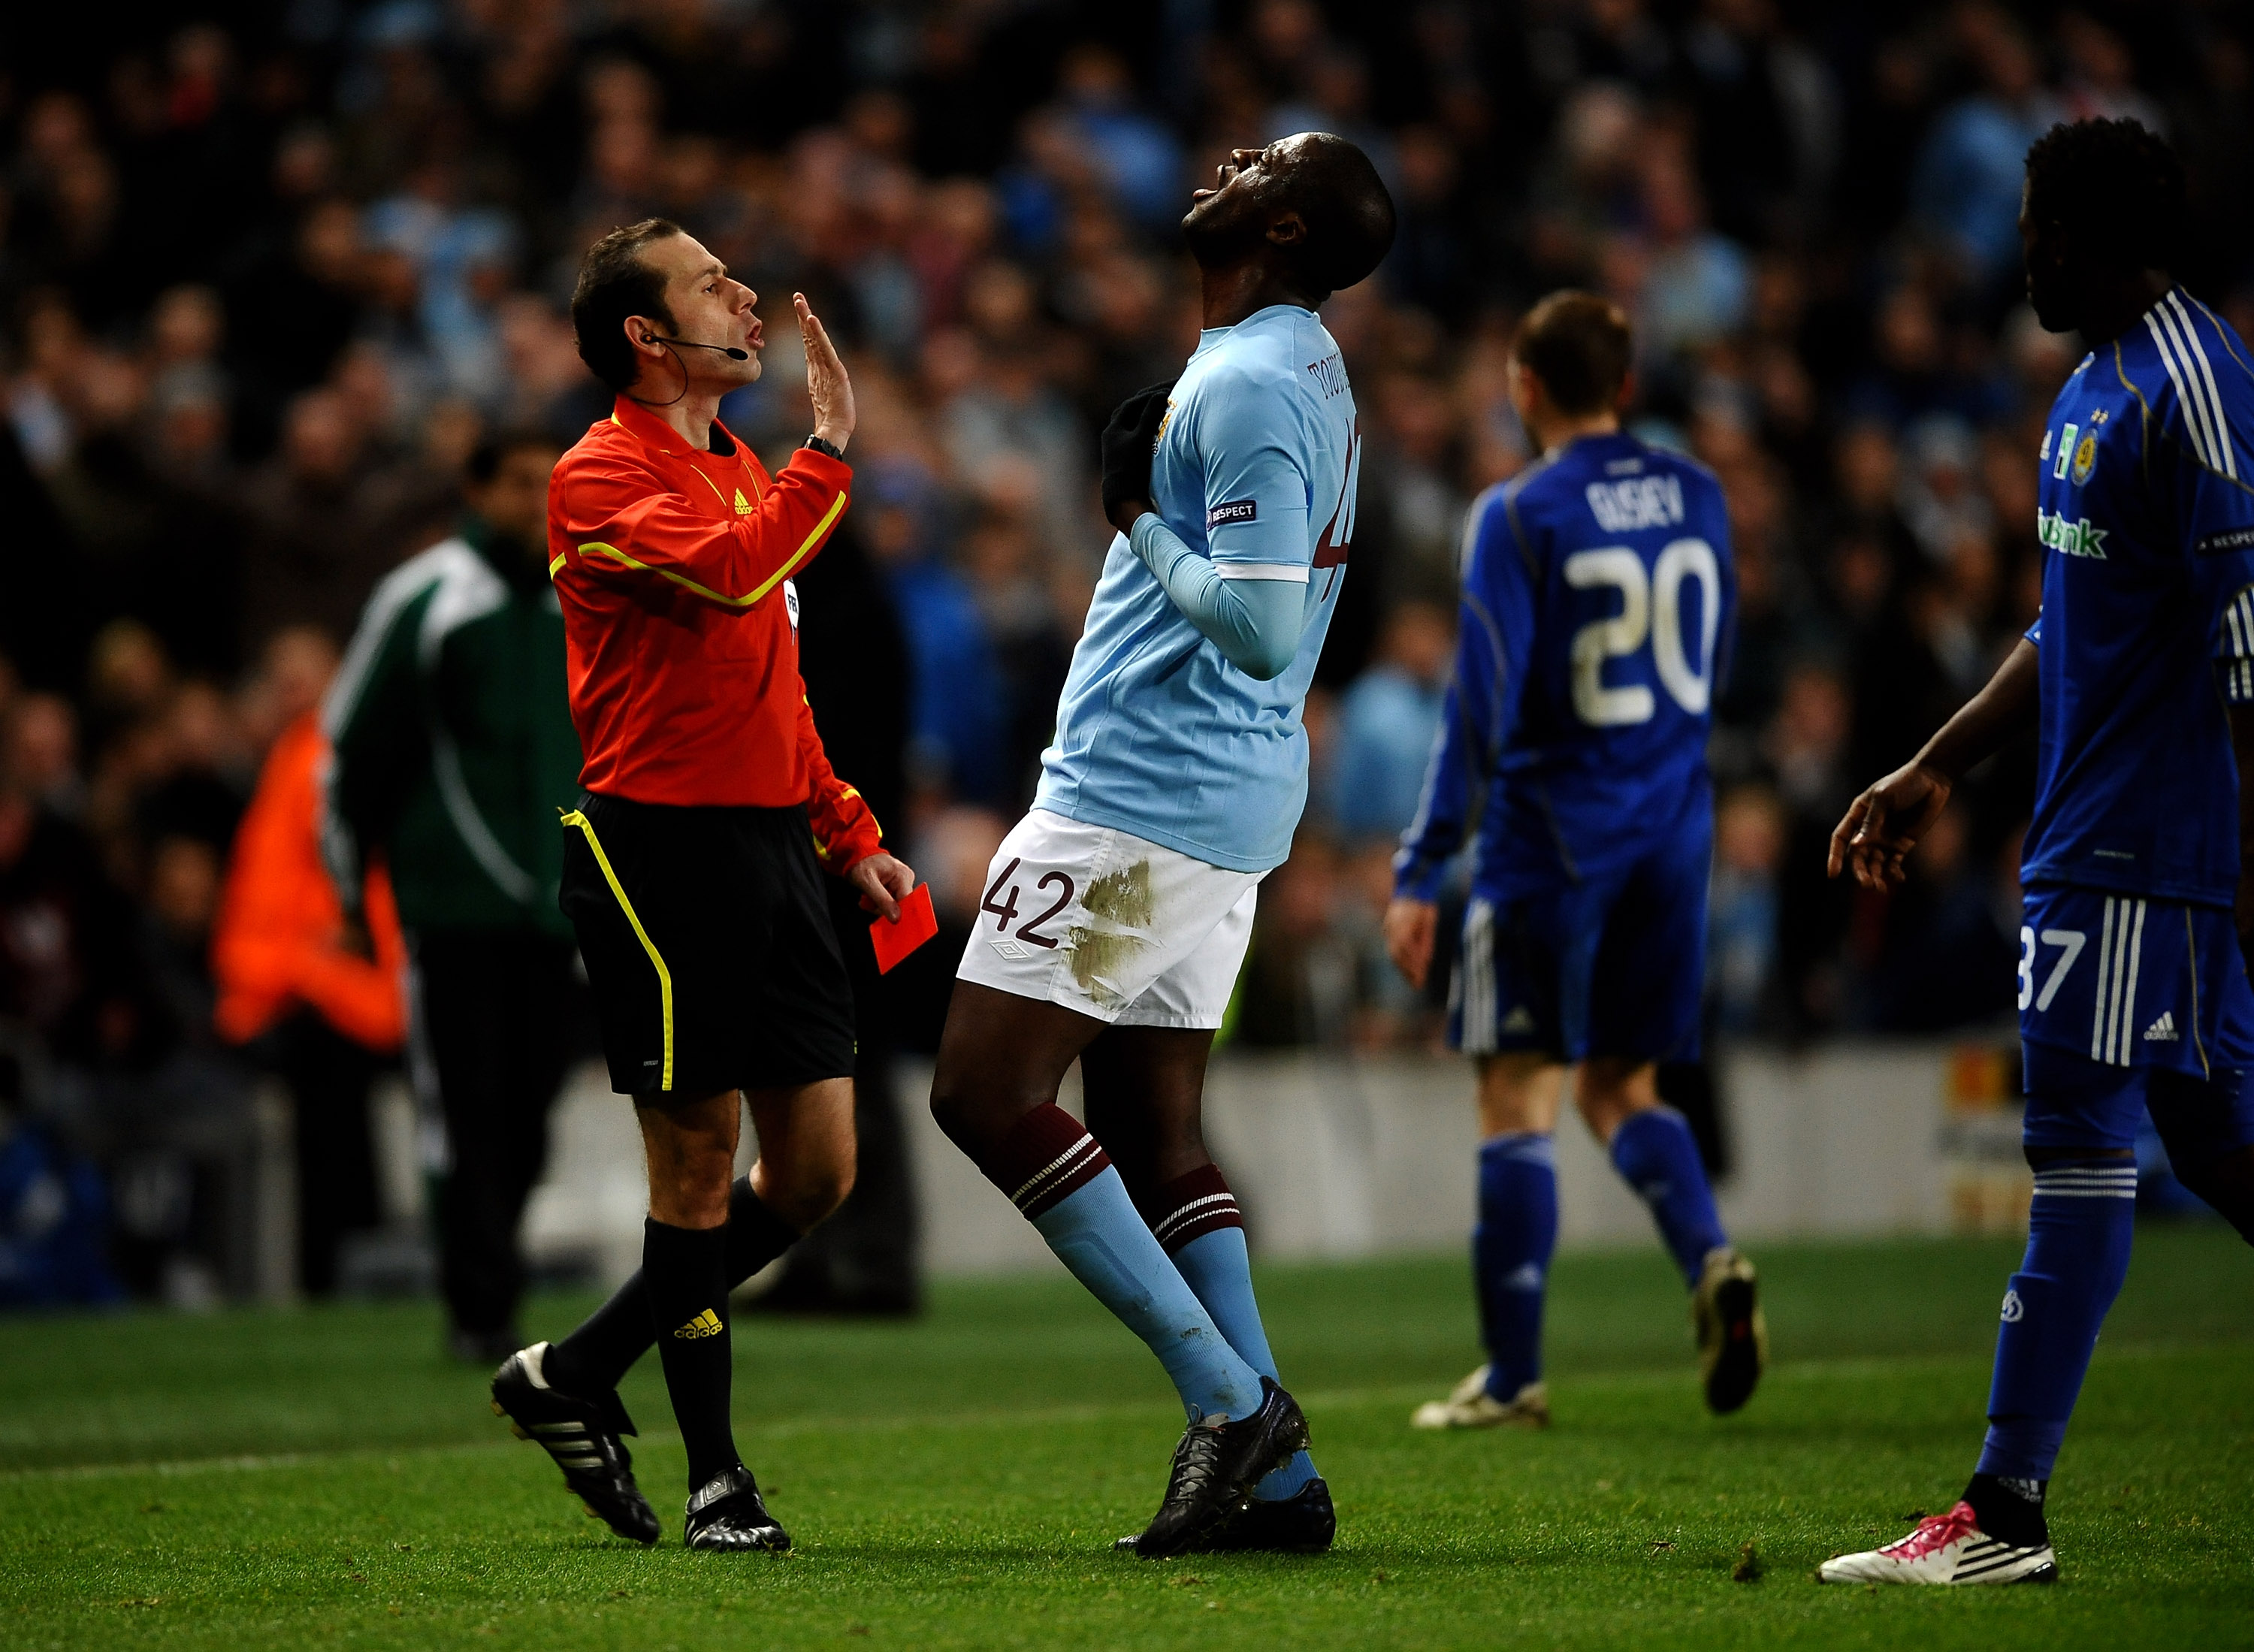 MANCHESTER, ENGLAND - MARCH 17:  Yaya Toure of Manchester City argues with referee Vladimir Sajn after he sent off Mario Balotelli of Manchester City during the UEFA Europa League round of 16 second leg match between Manchester City and Dynamo Kiev at Cit